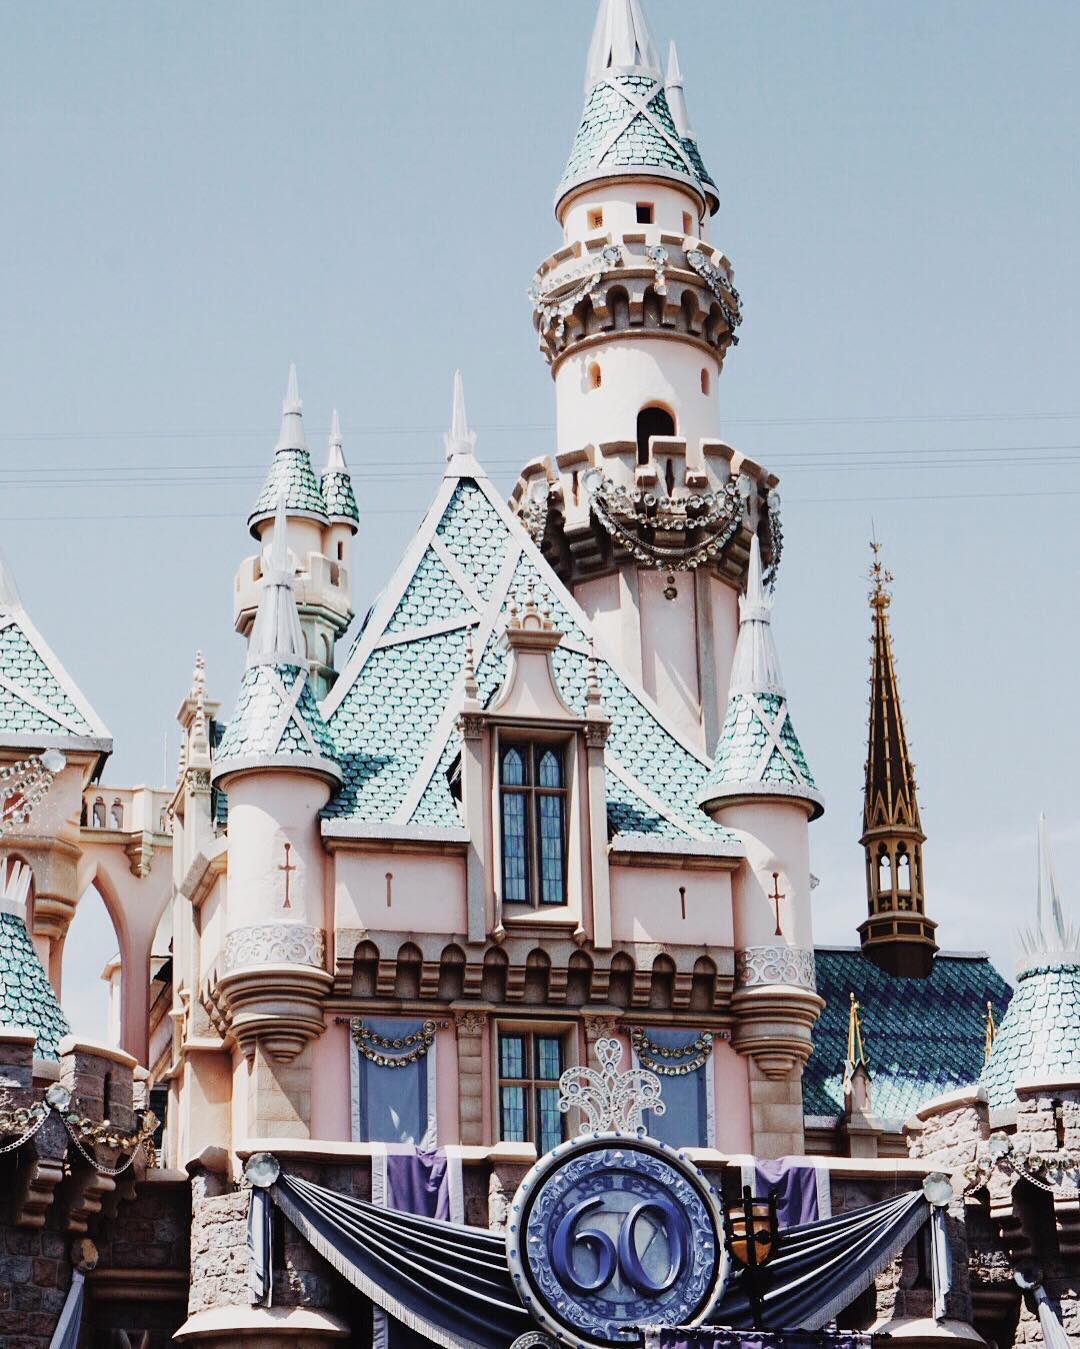 happiest place on earth✨